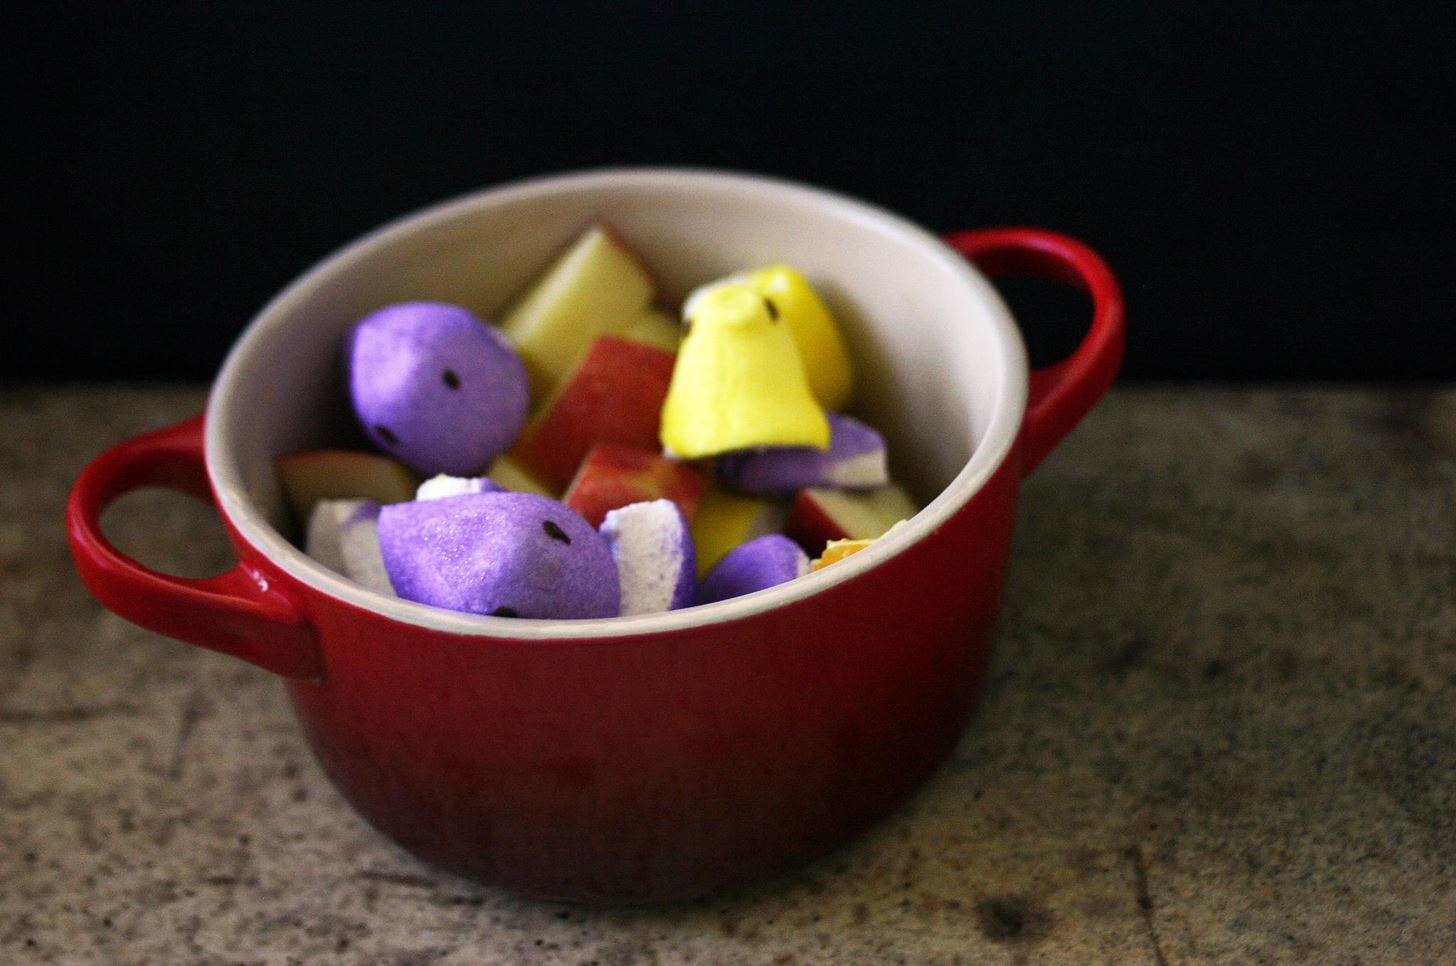 How to Cook with Marshmallow Peeps